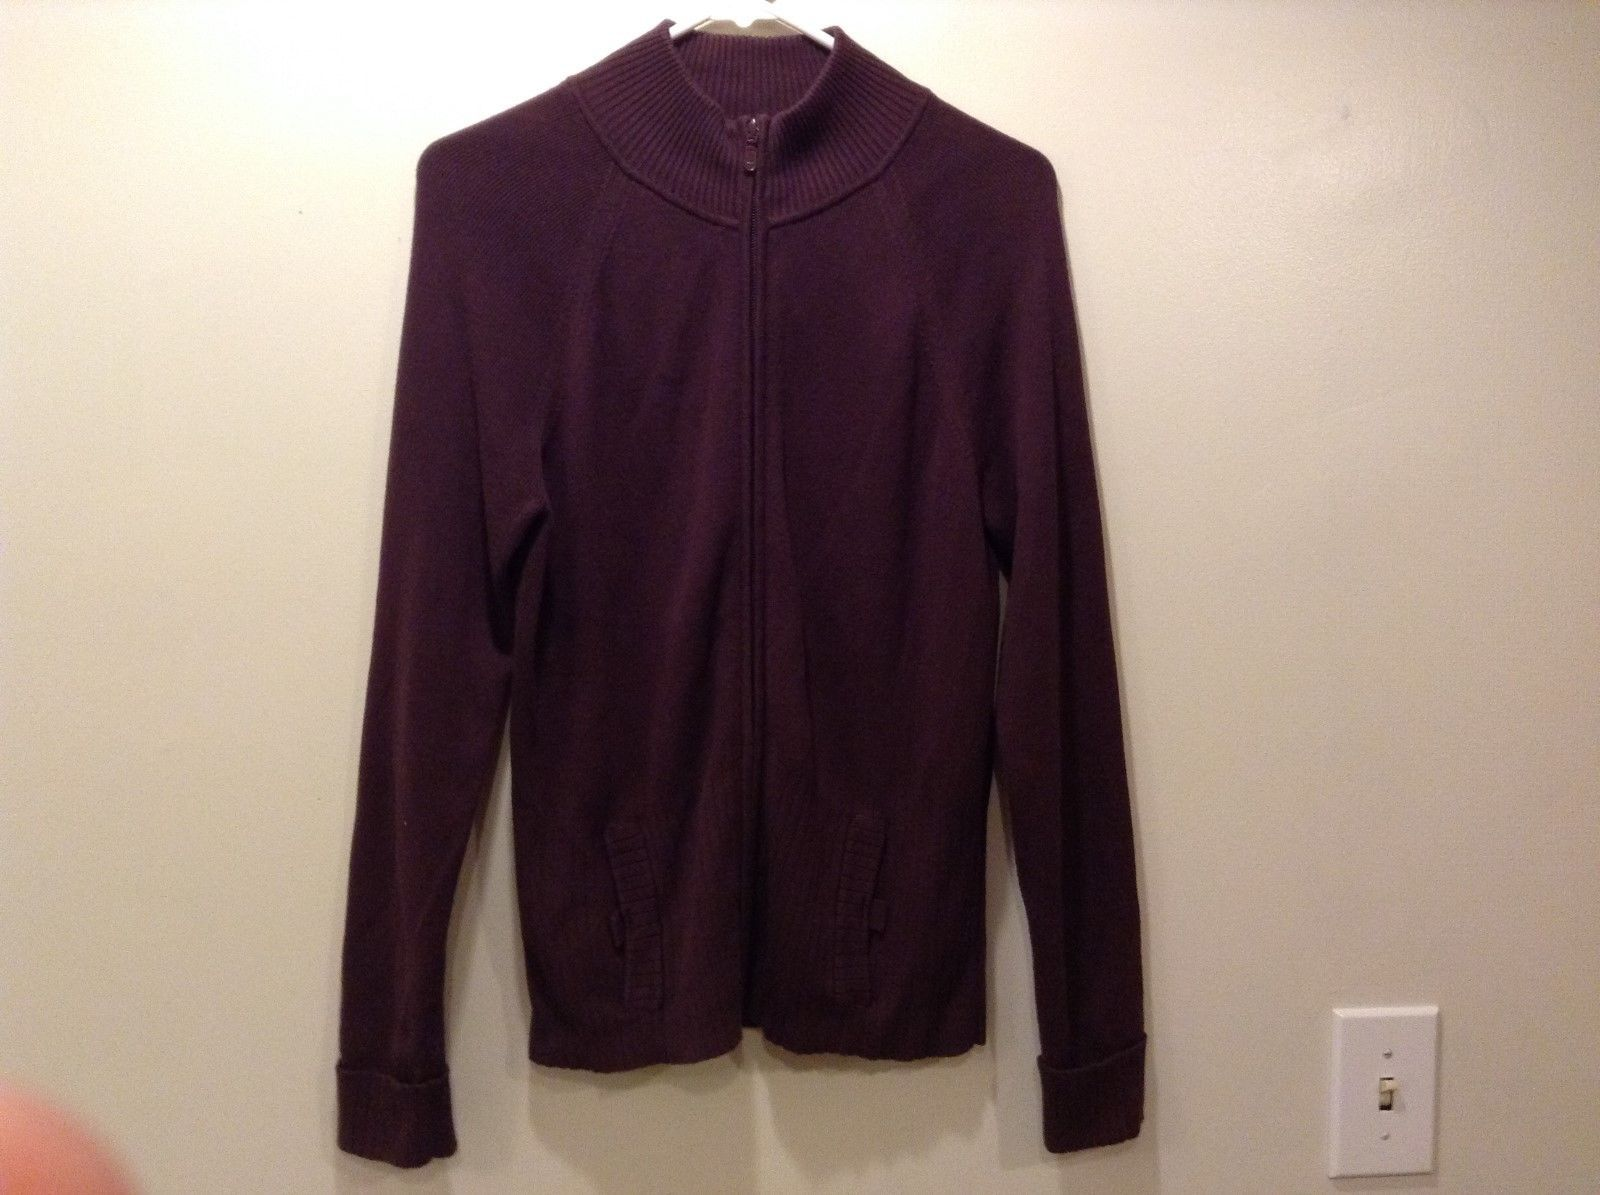 Covington Ladies Dark Purple Zip Up Jacket Sz M 10-12